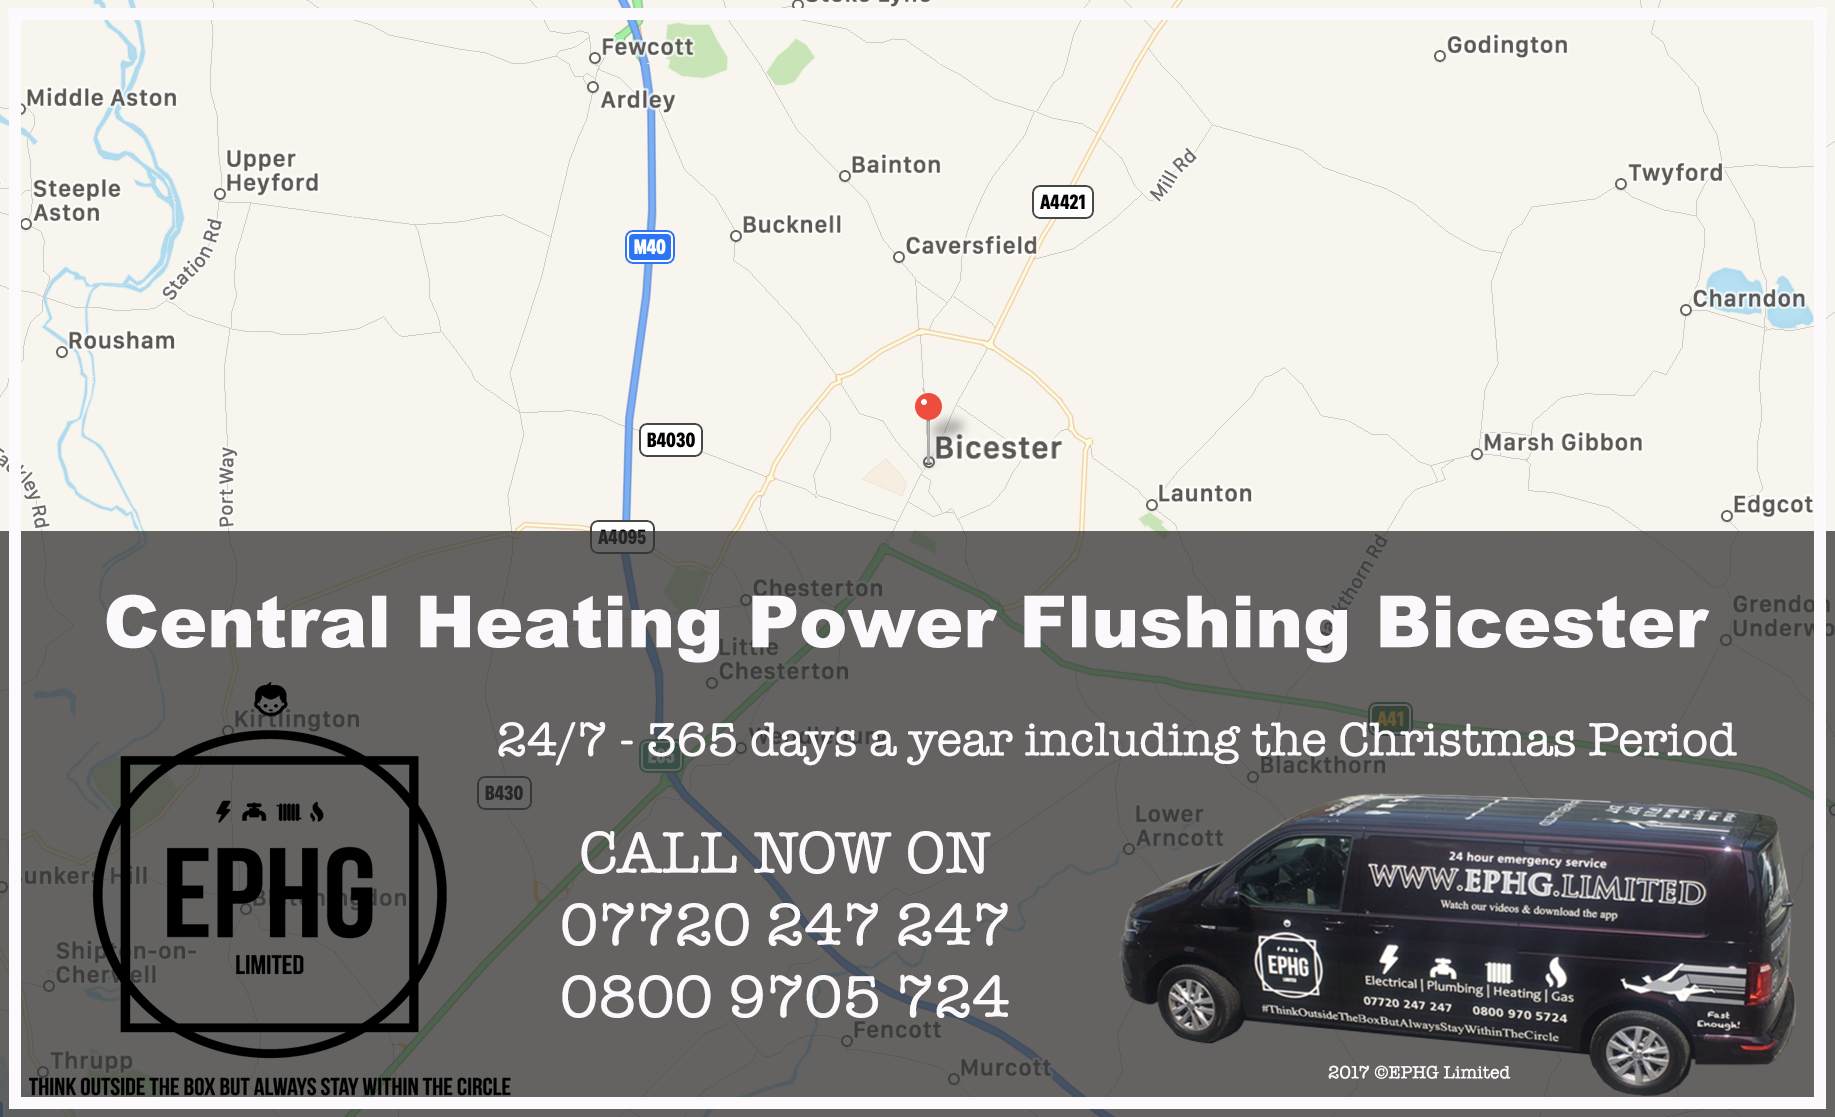 Central Heating Power Flush Bicester